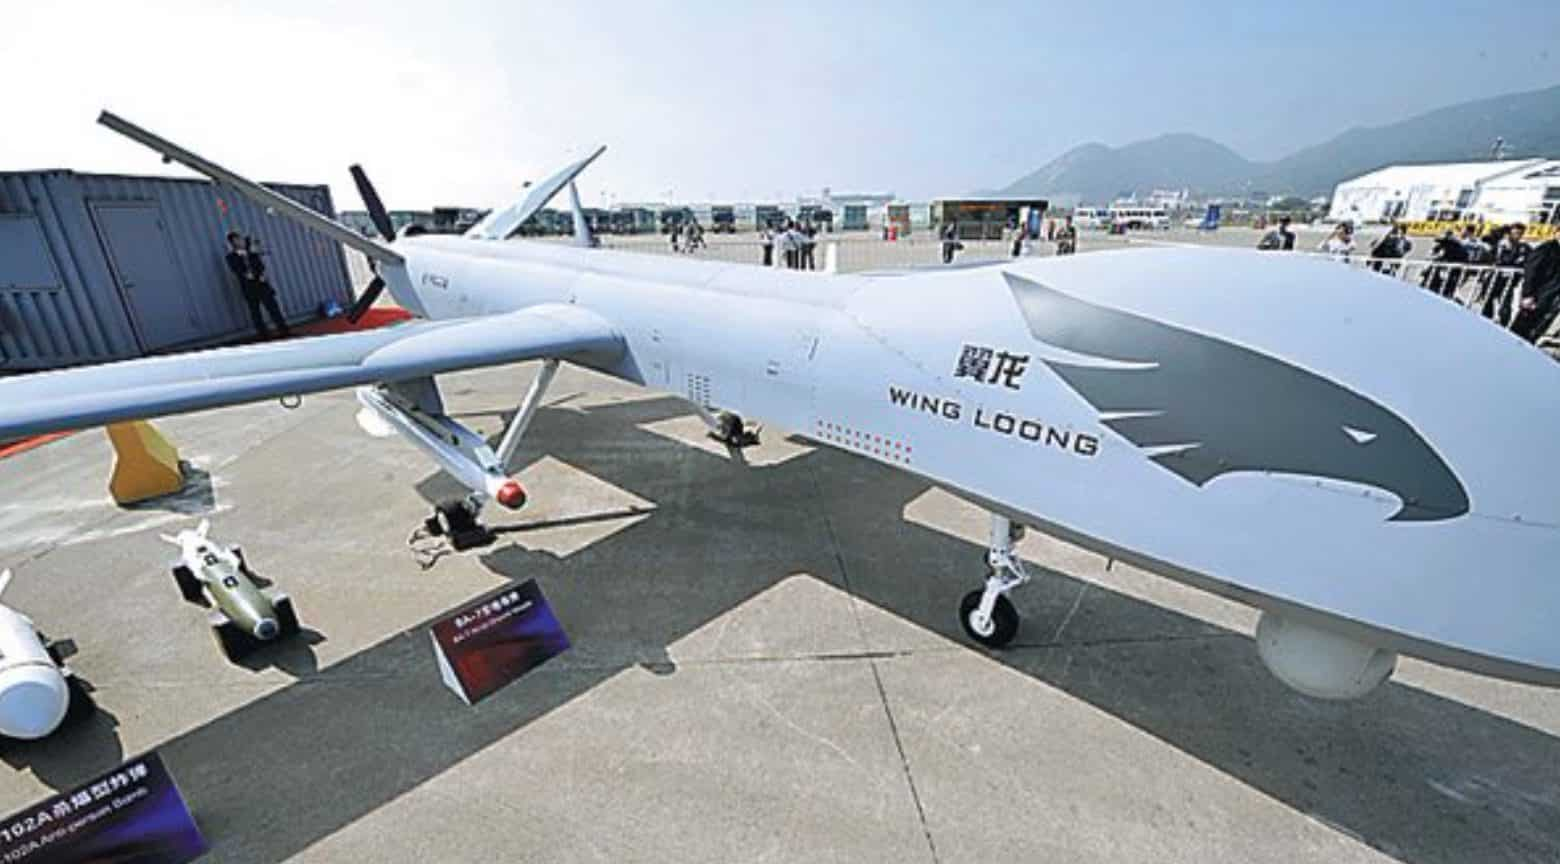 China is a major exporter of armed drones